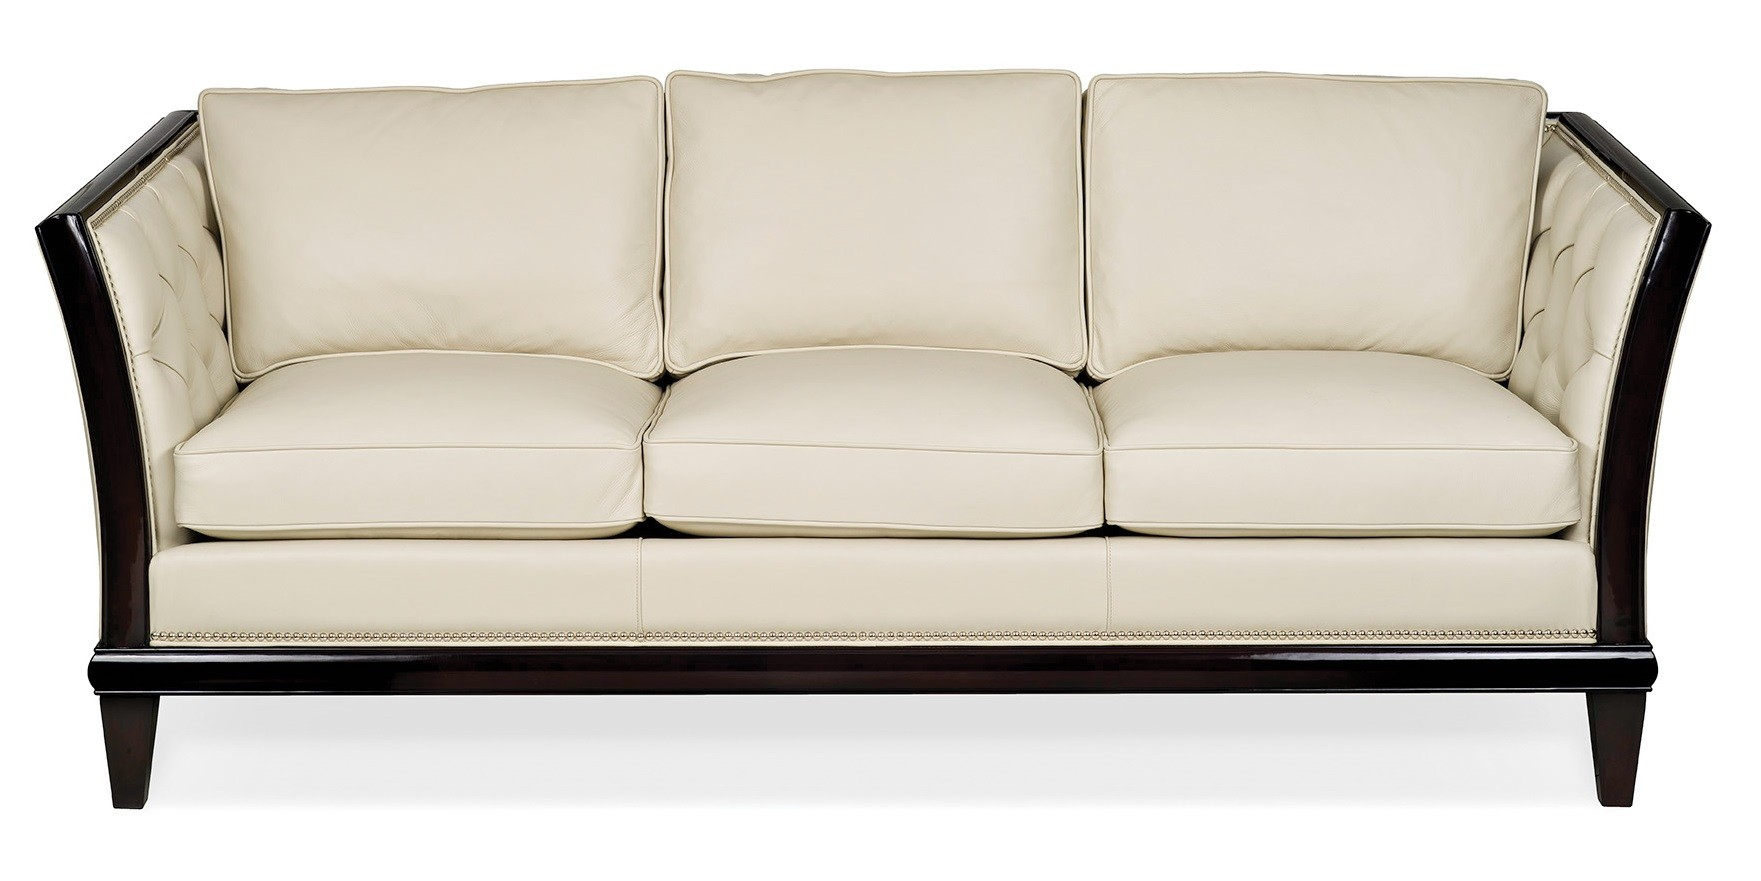 High End Off-White is the New White Leather Sofa